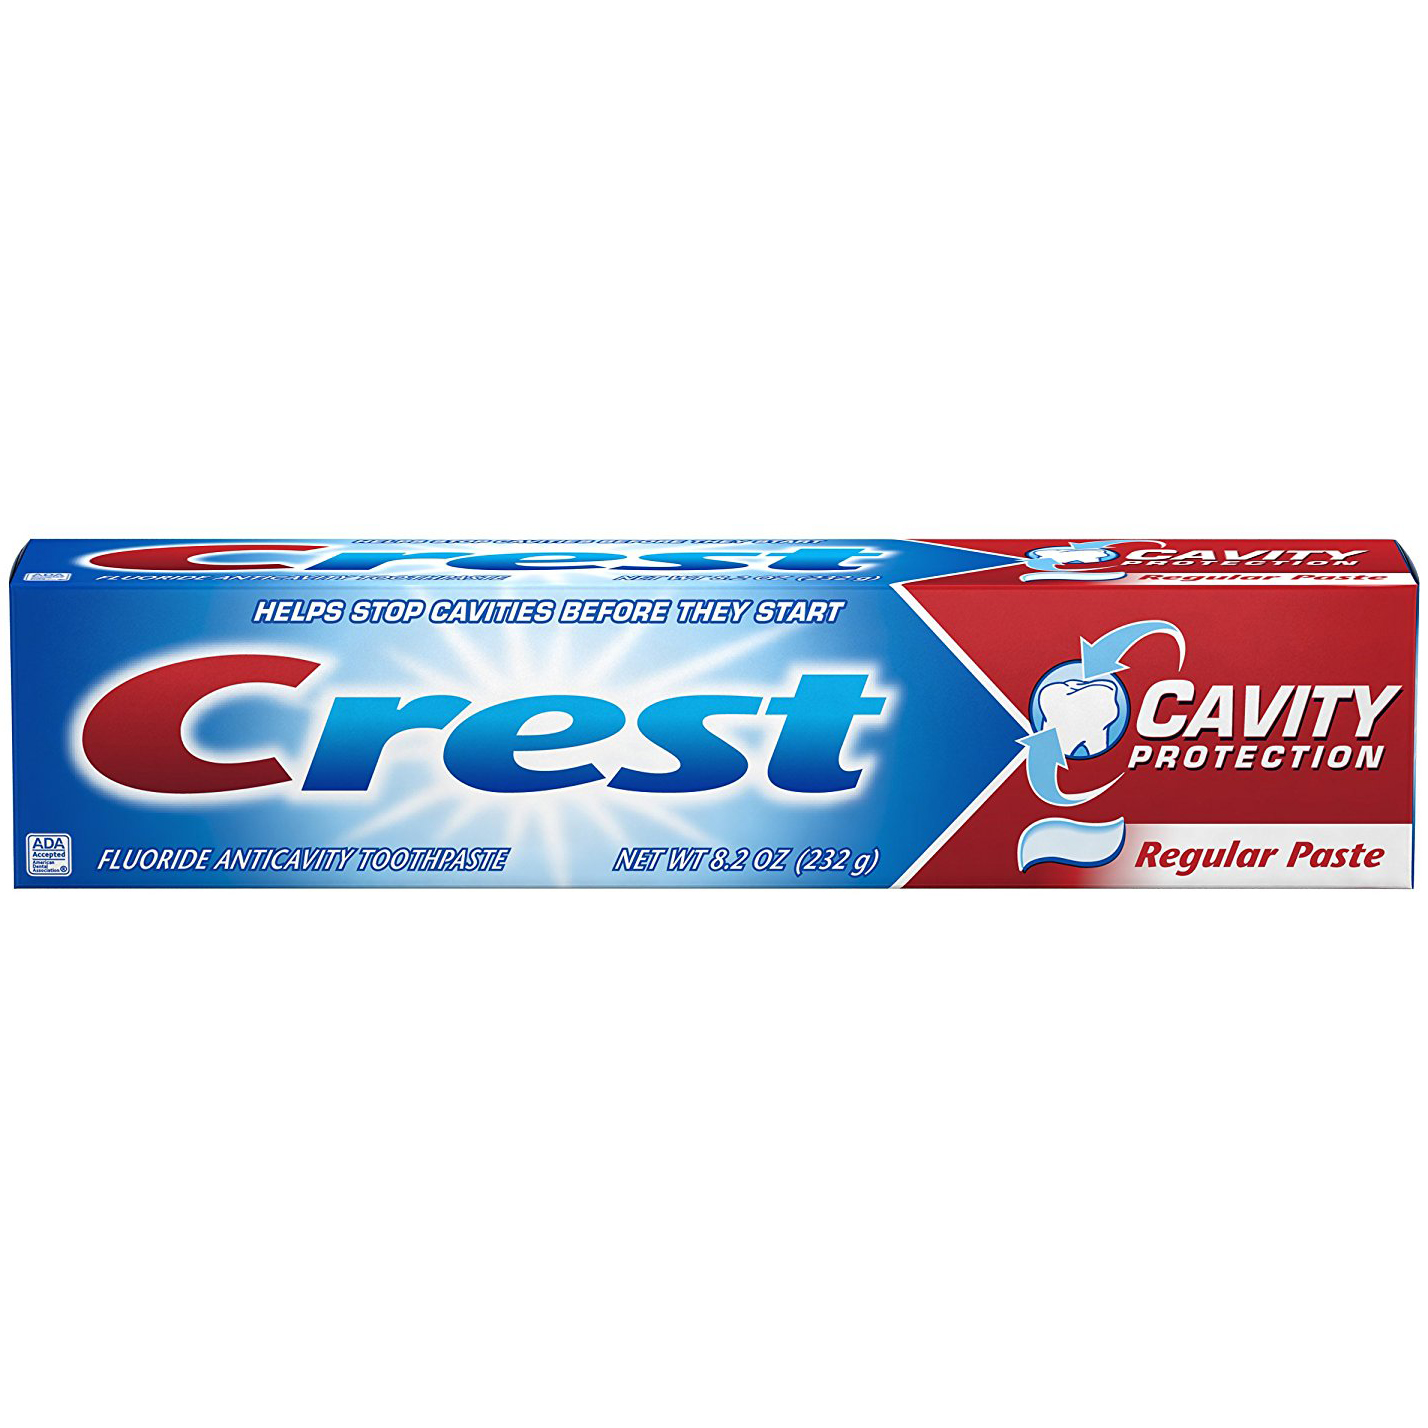 ORAL-B - CREST CAVITY PROTECTION- (Regular Paste) - 6.4oz